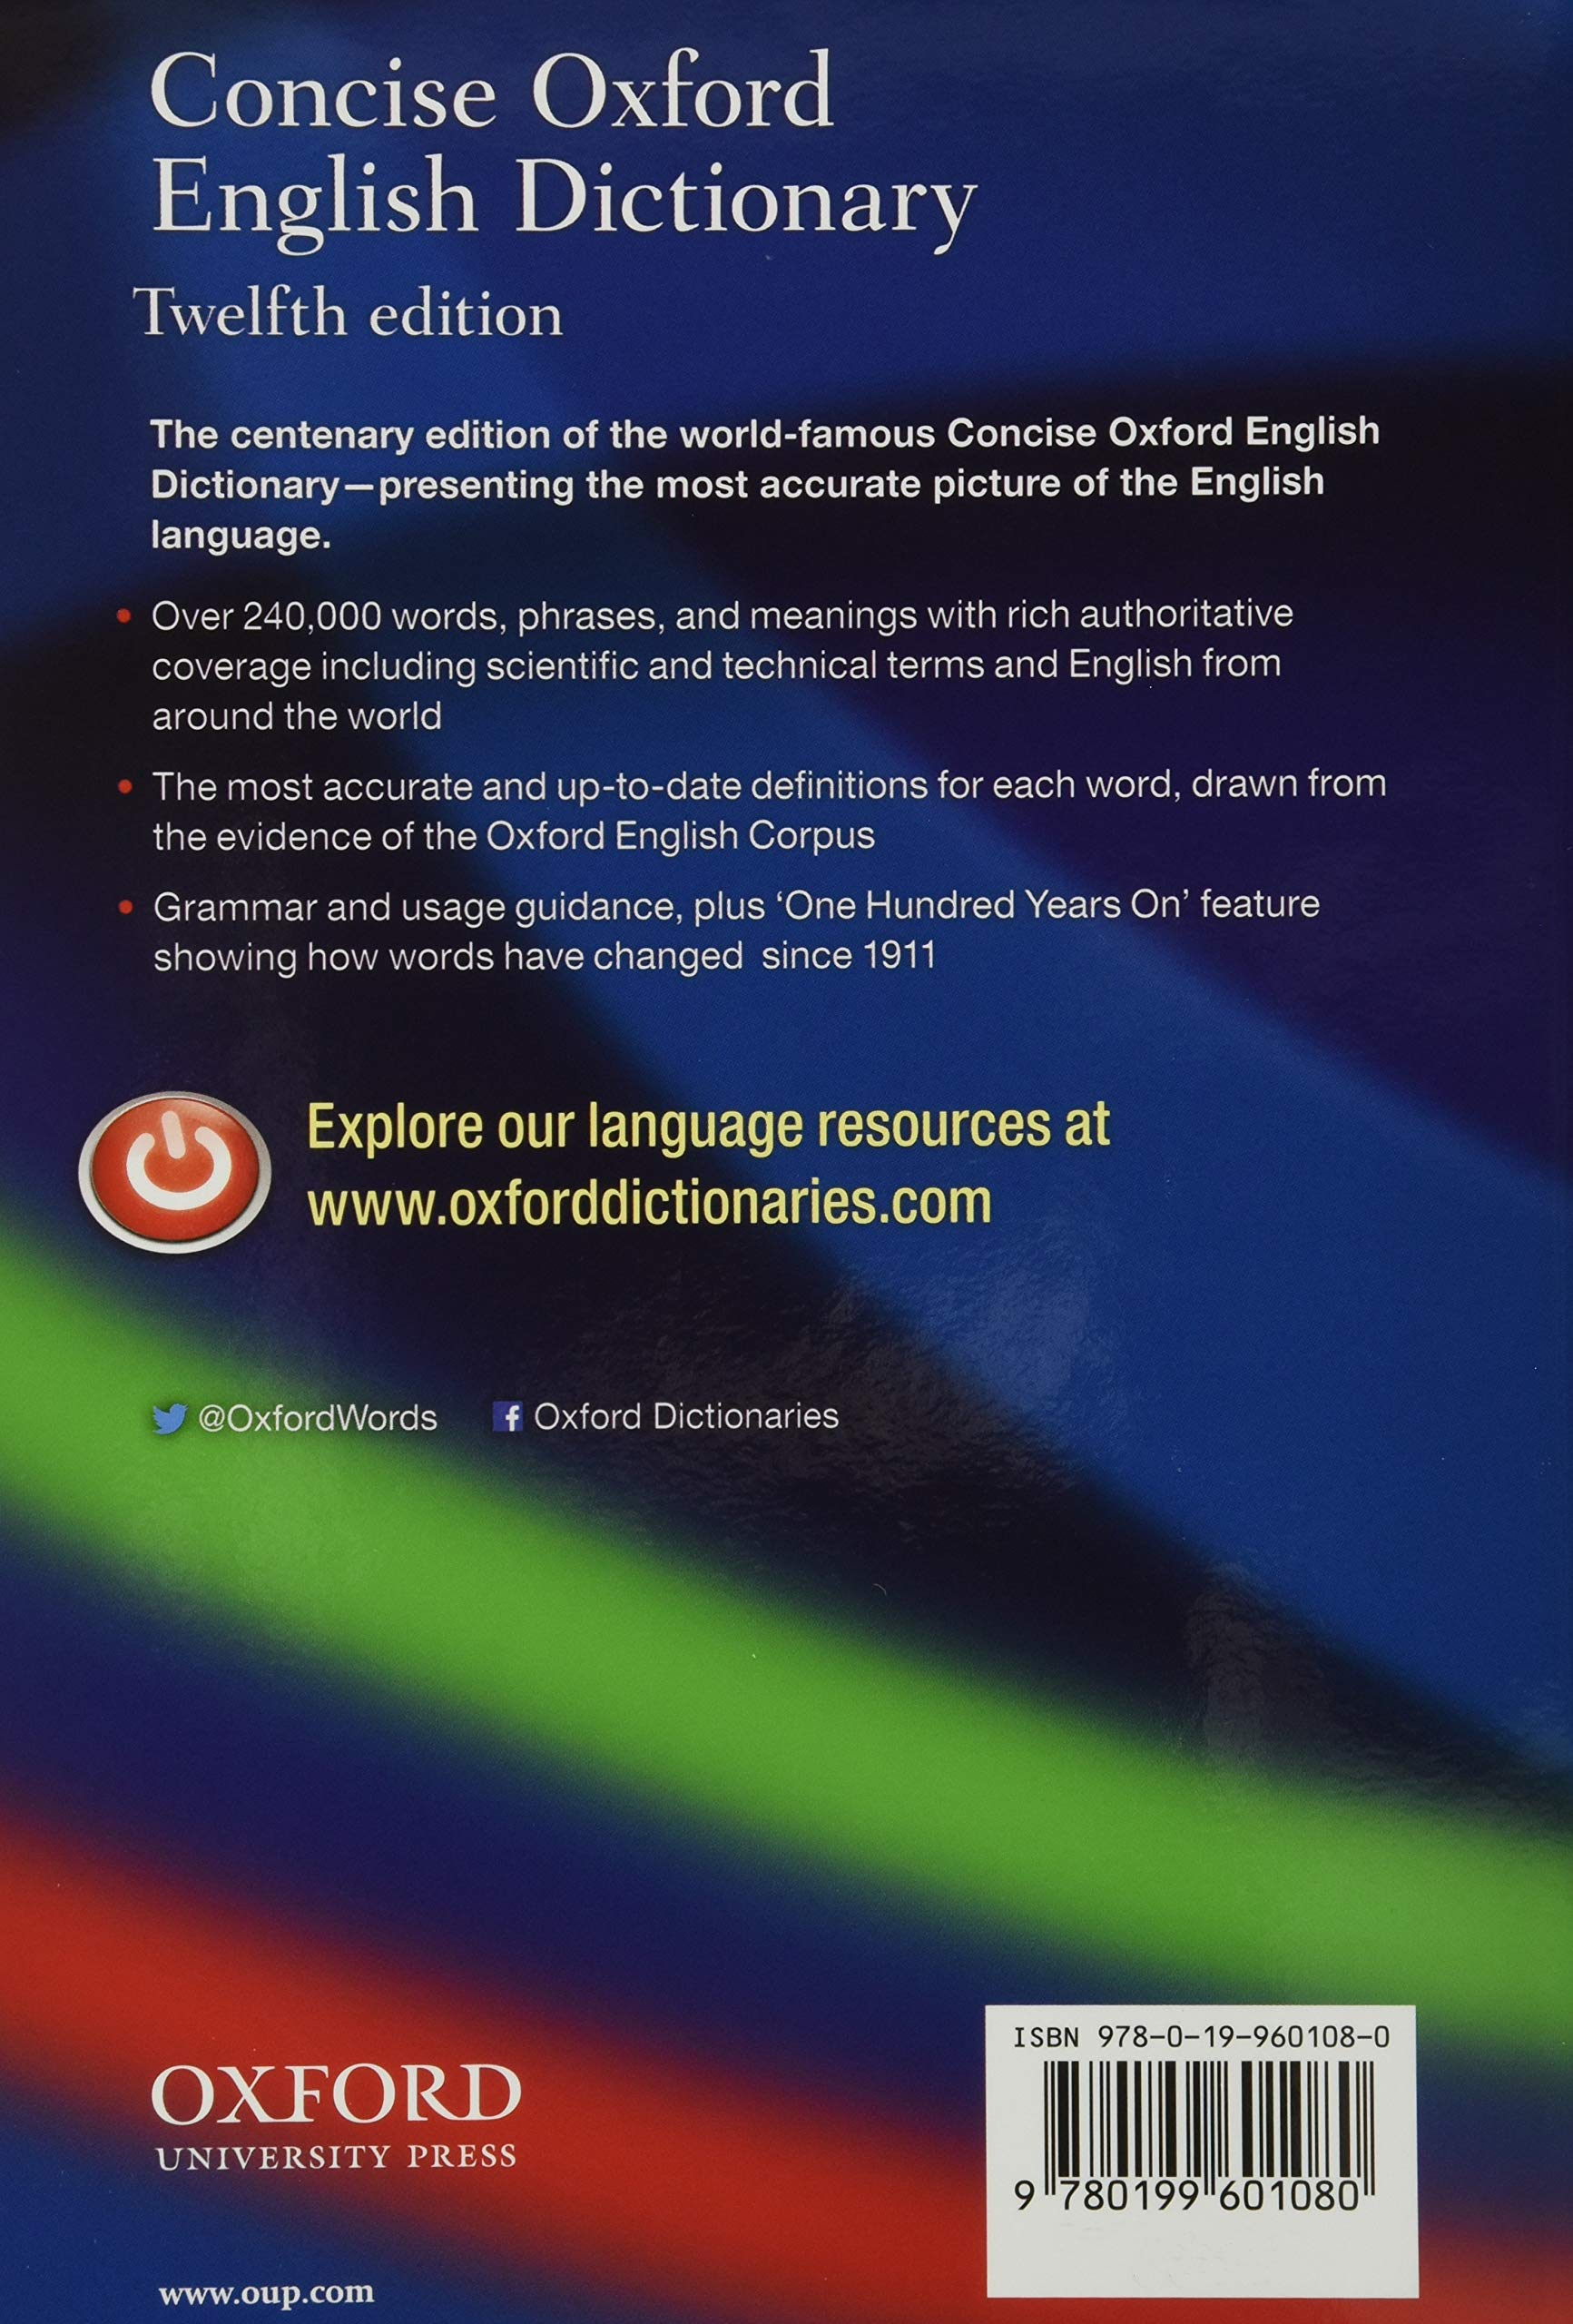 concise oxford english dictionary 20th edition pdf